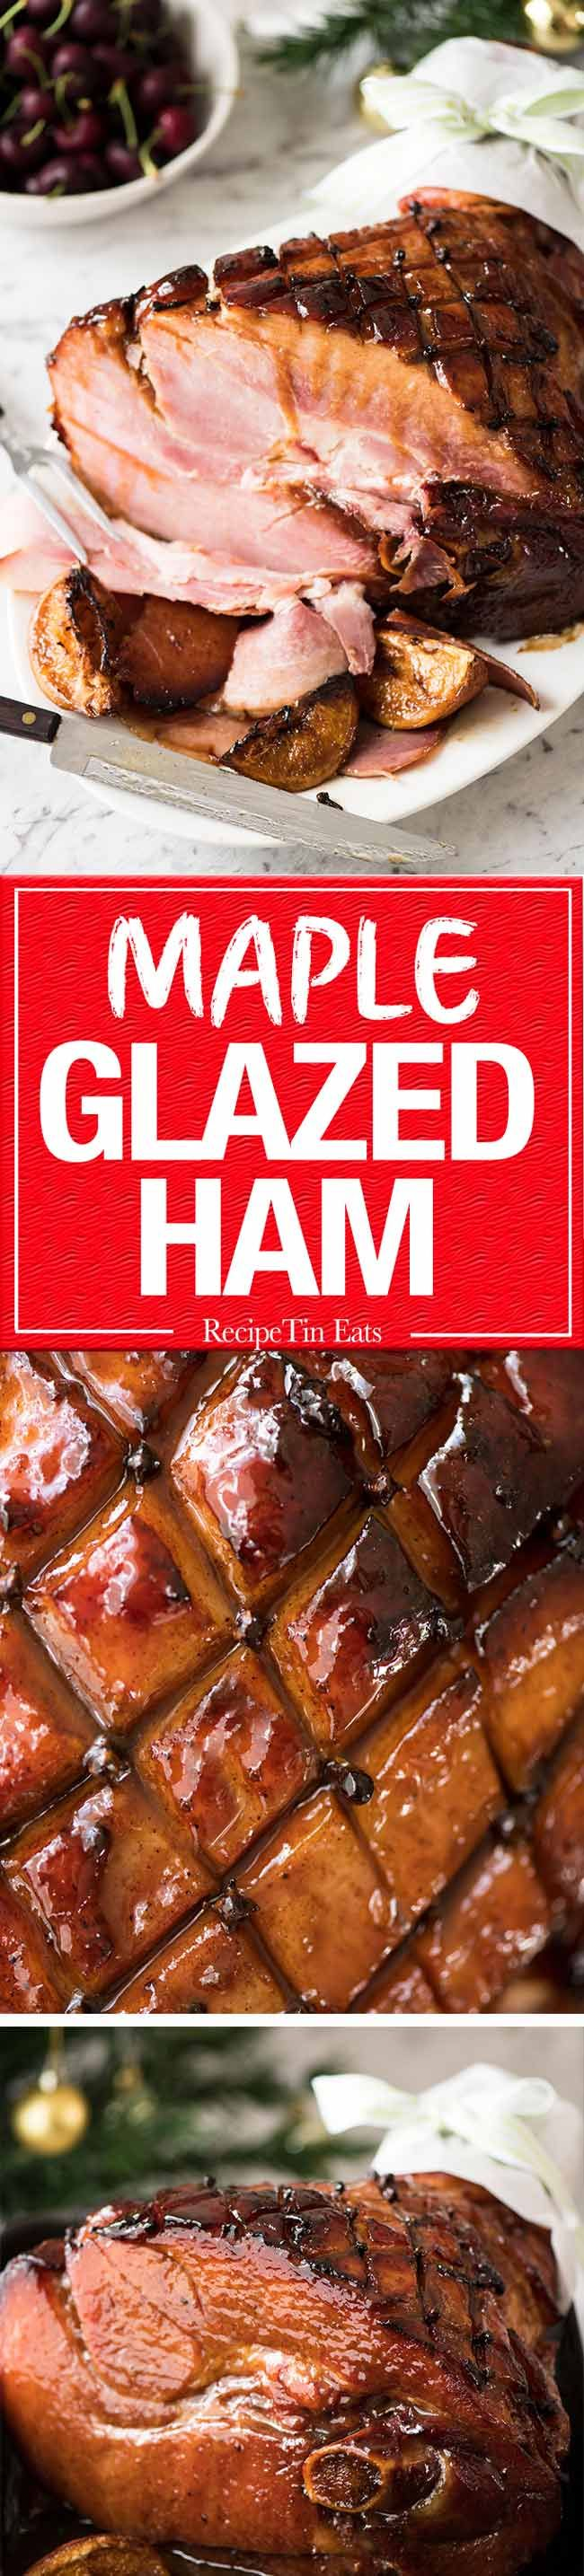 This Baked Ham with Maple Brown Sugar Glaze is a spectacular, EASY centrepiece for your Christmas table! www.recipetineats.com